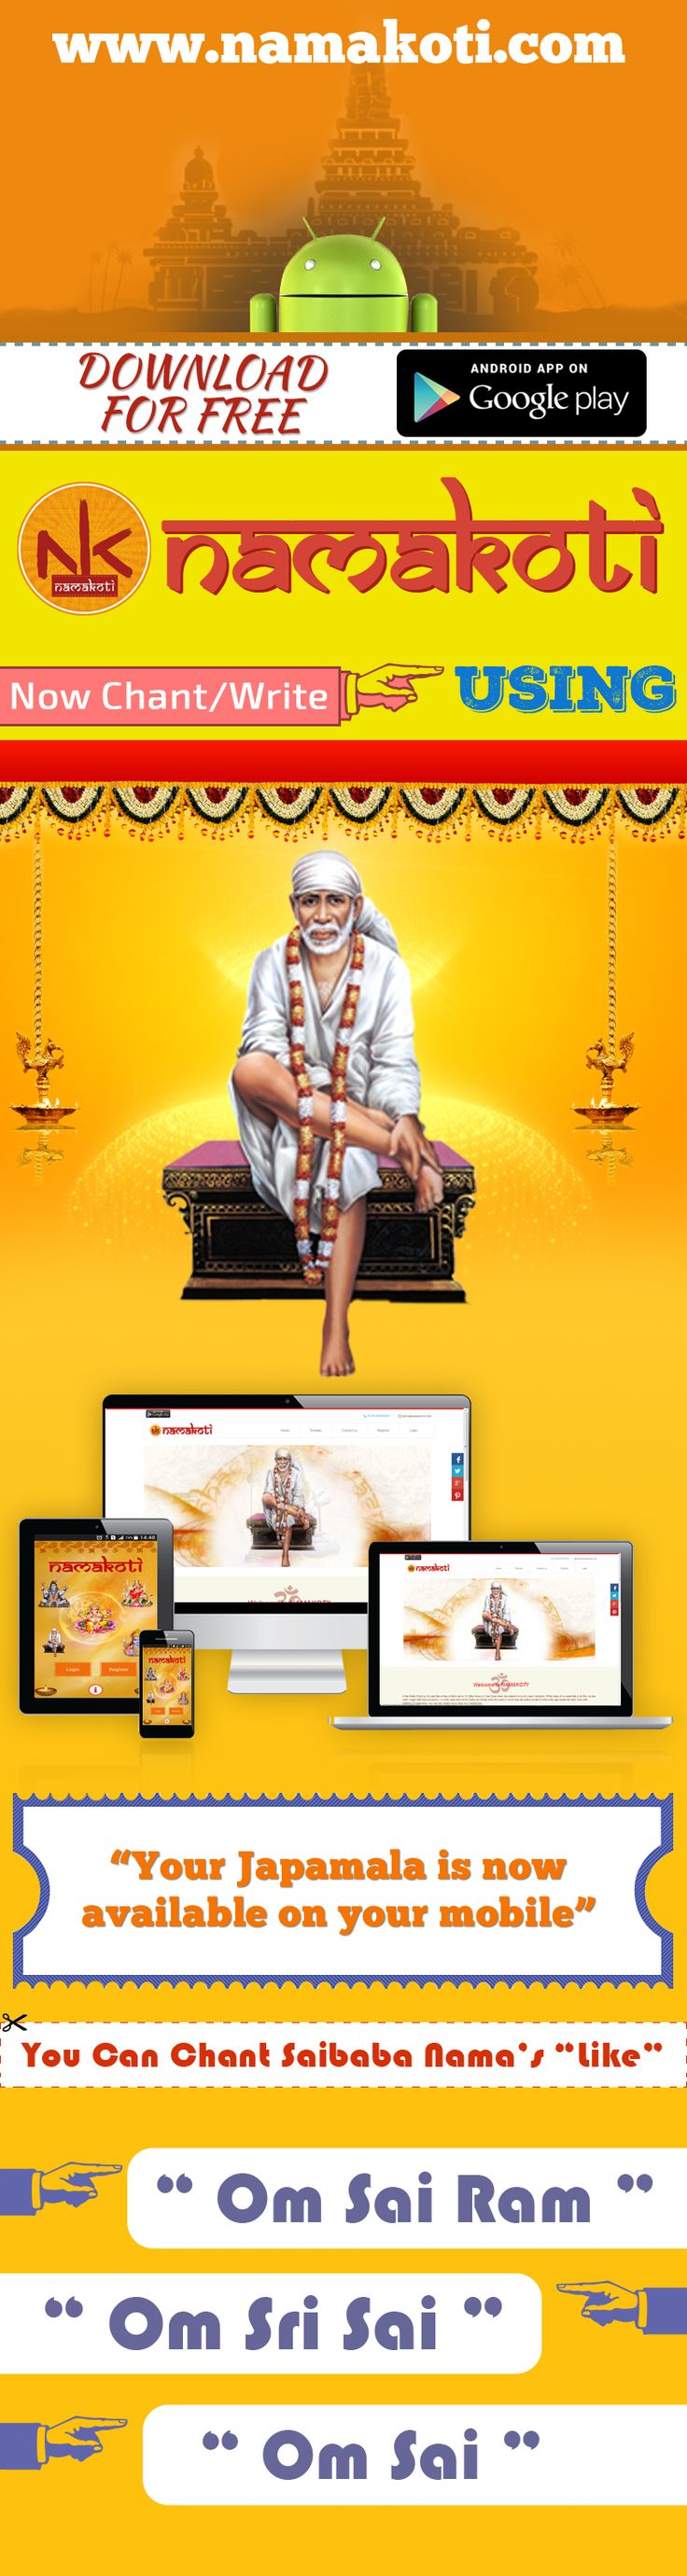 Om Sri Ram To meet this specific requirement of yours, we have provided you with the e-Japamala interface. Download Namakoti App free at  http://www.namakoti.com/